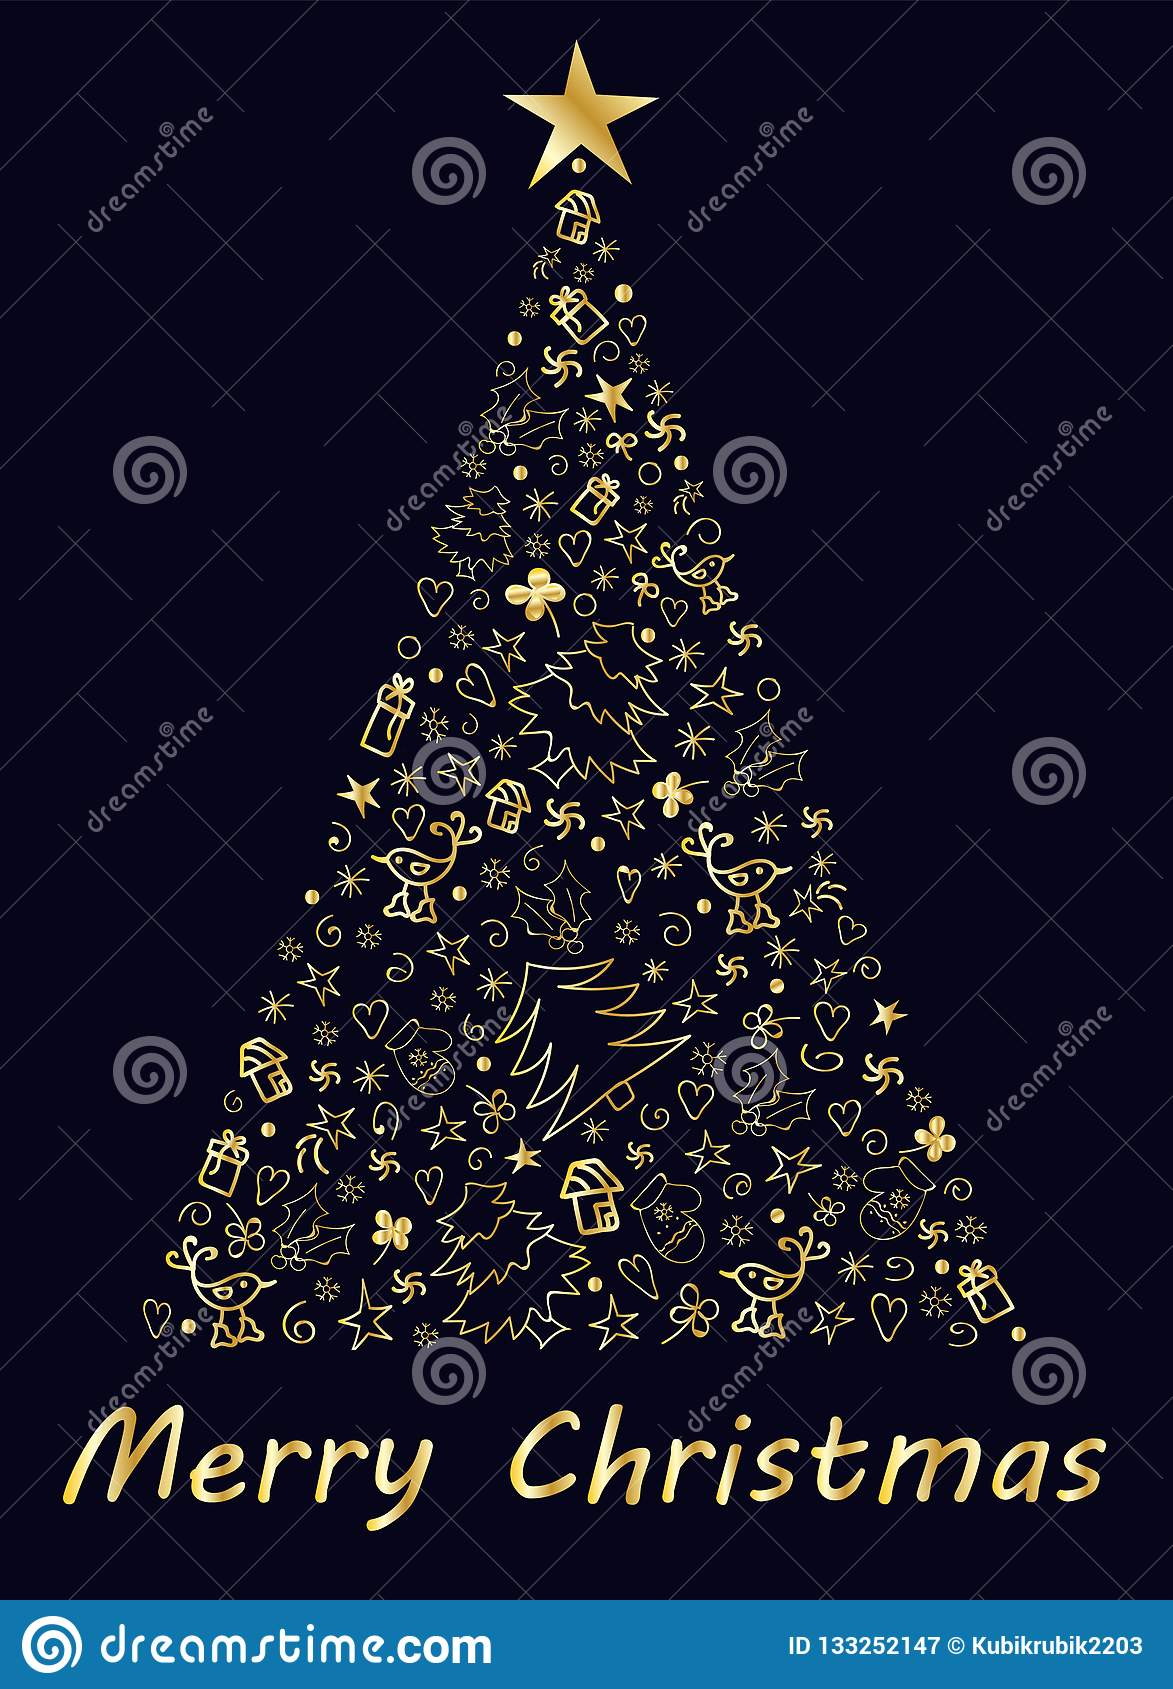 Merry Christmas Card With Big Christmas Tree A Lot Of Different Decoration Vector Illustration Stock Vector Illustration Of Symbol Christmas 133252147